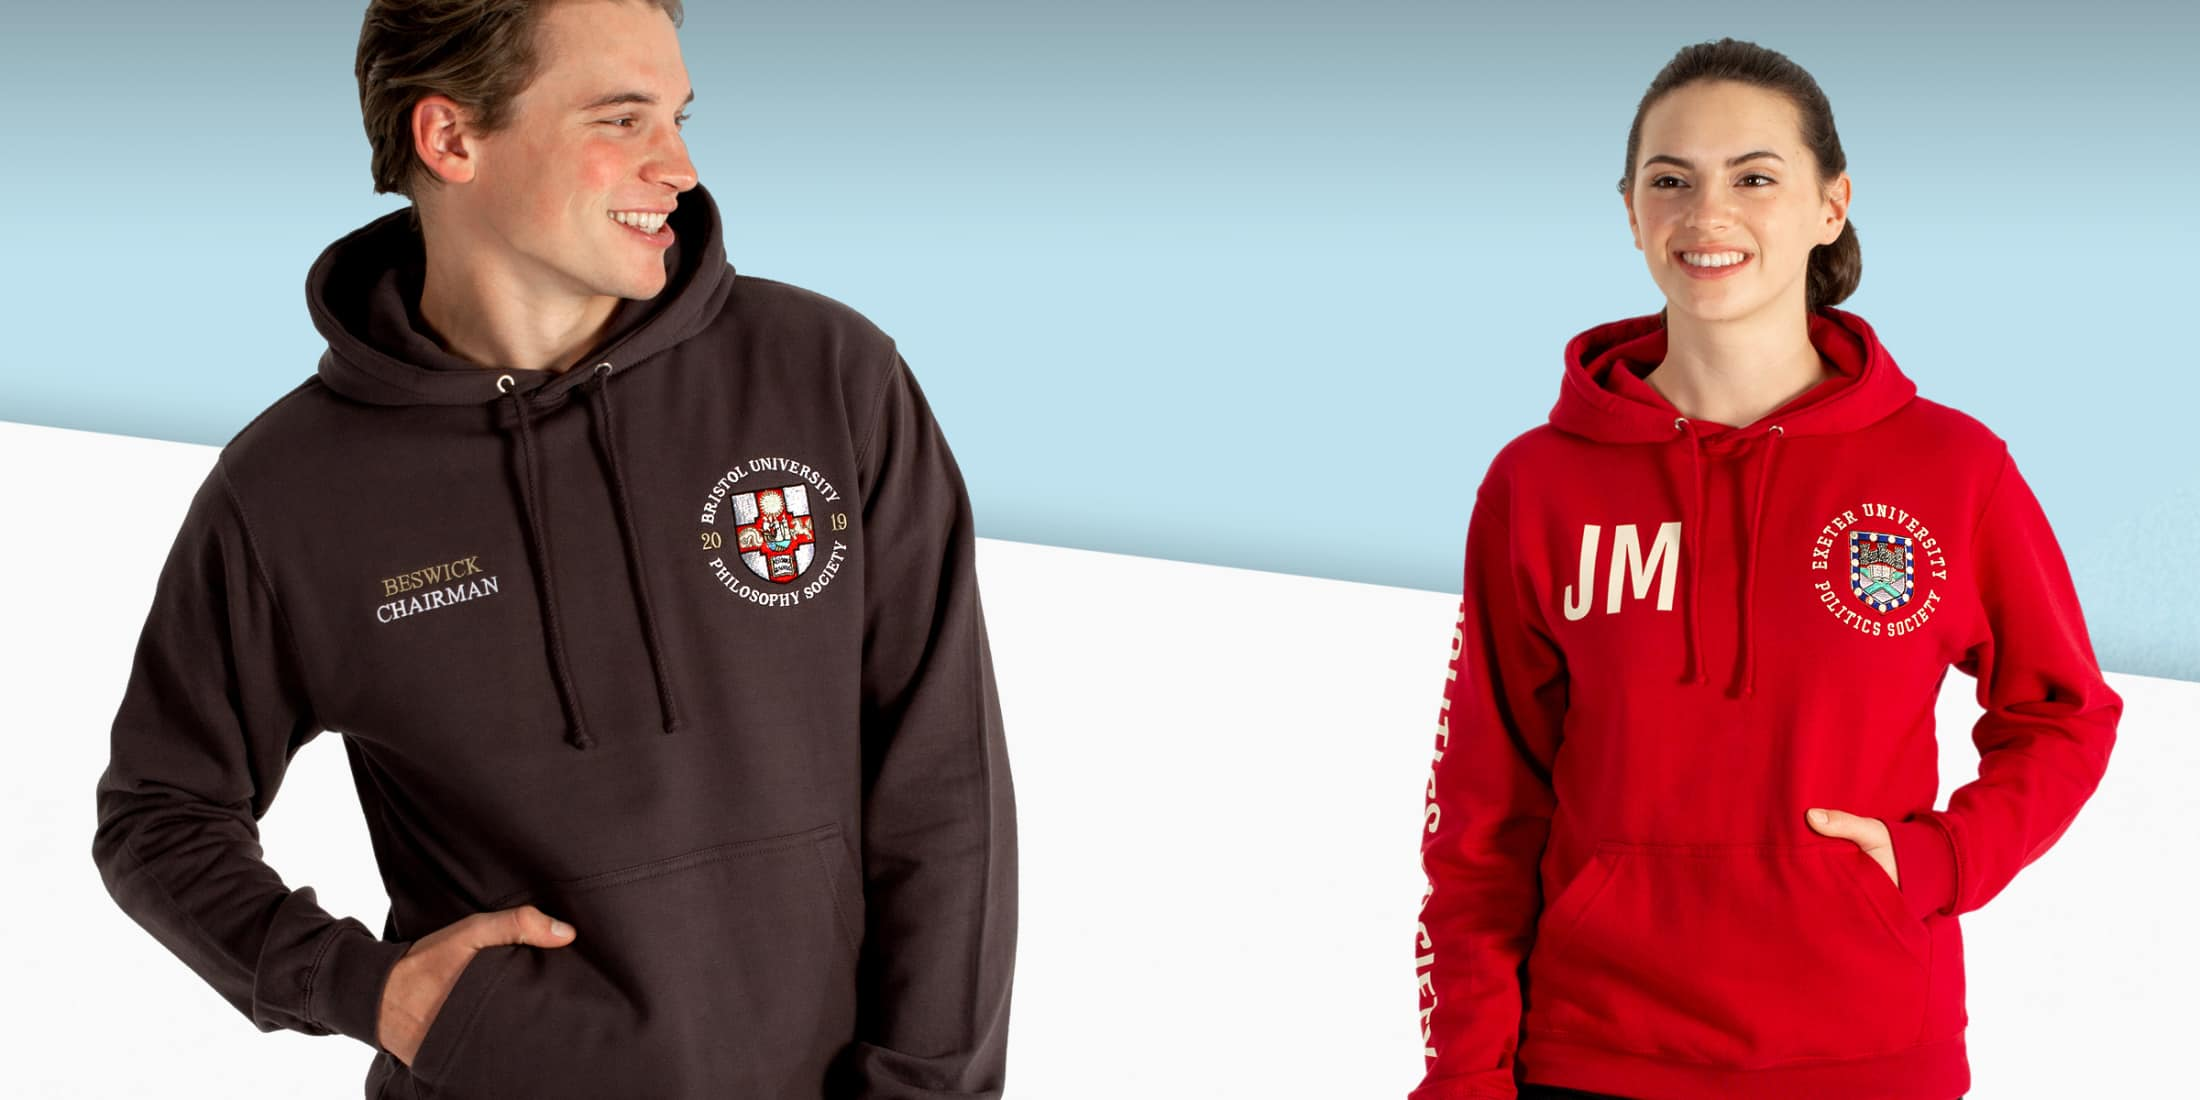 University logo hoodies for uni teams and societies